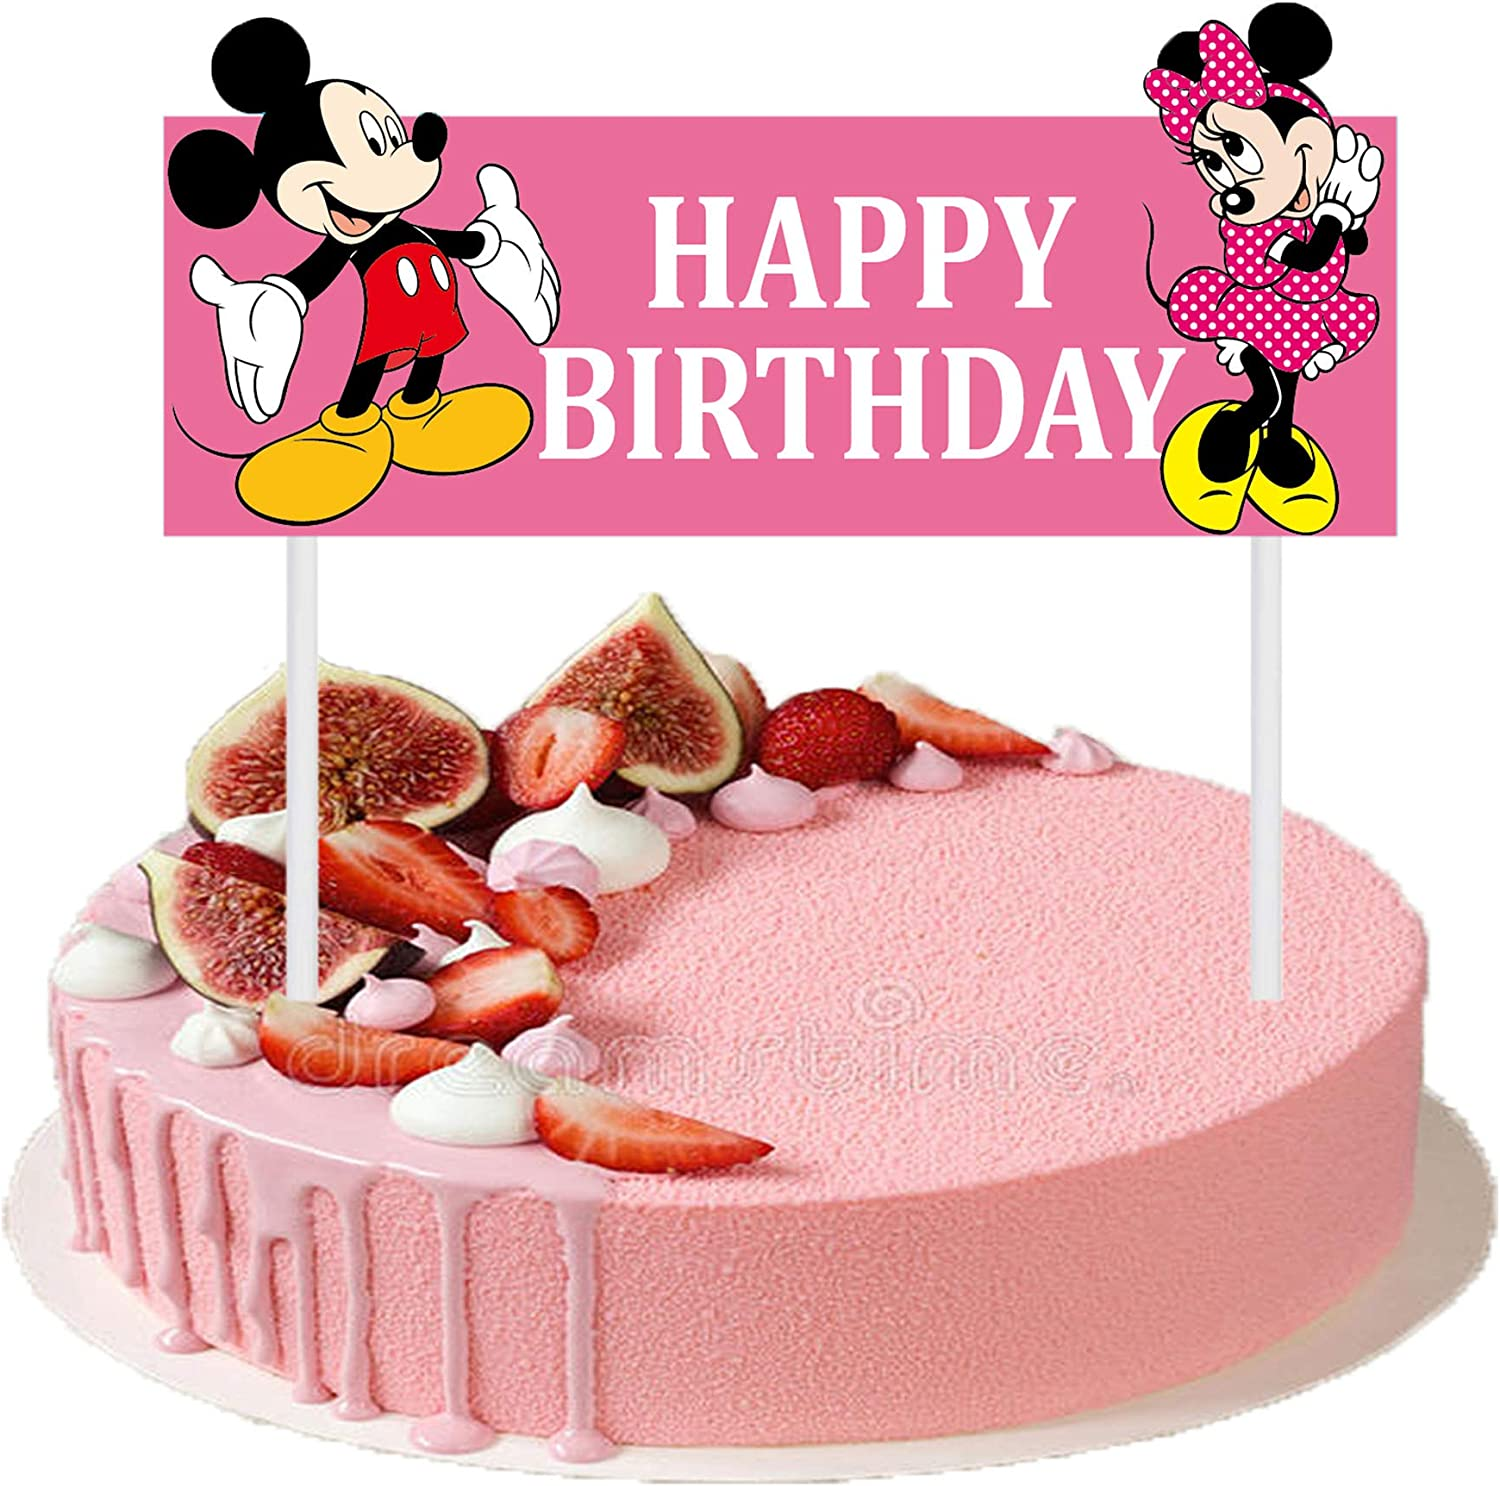 Tremendous Amazon Com Cute Happy Birthday Cake Topper 6 3 Inches Mickey Funny Birthday Cards Online Elaedamsfinfo